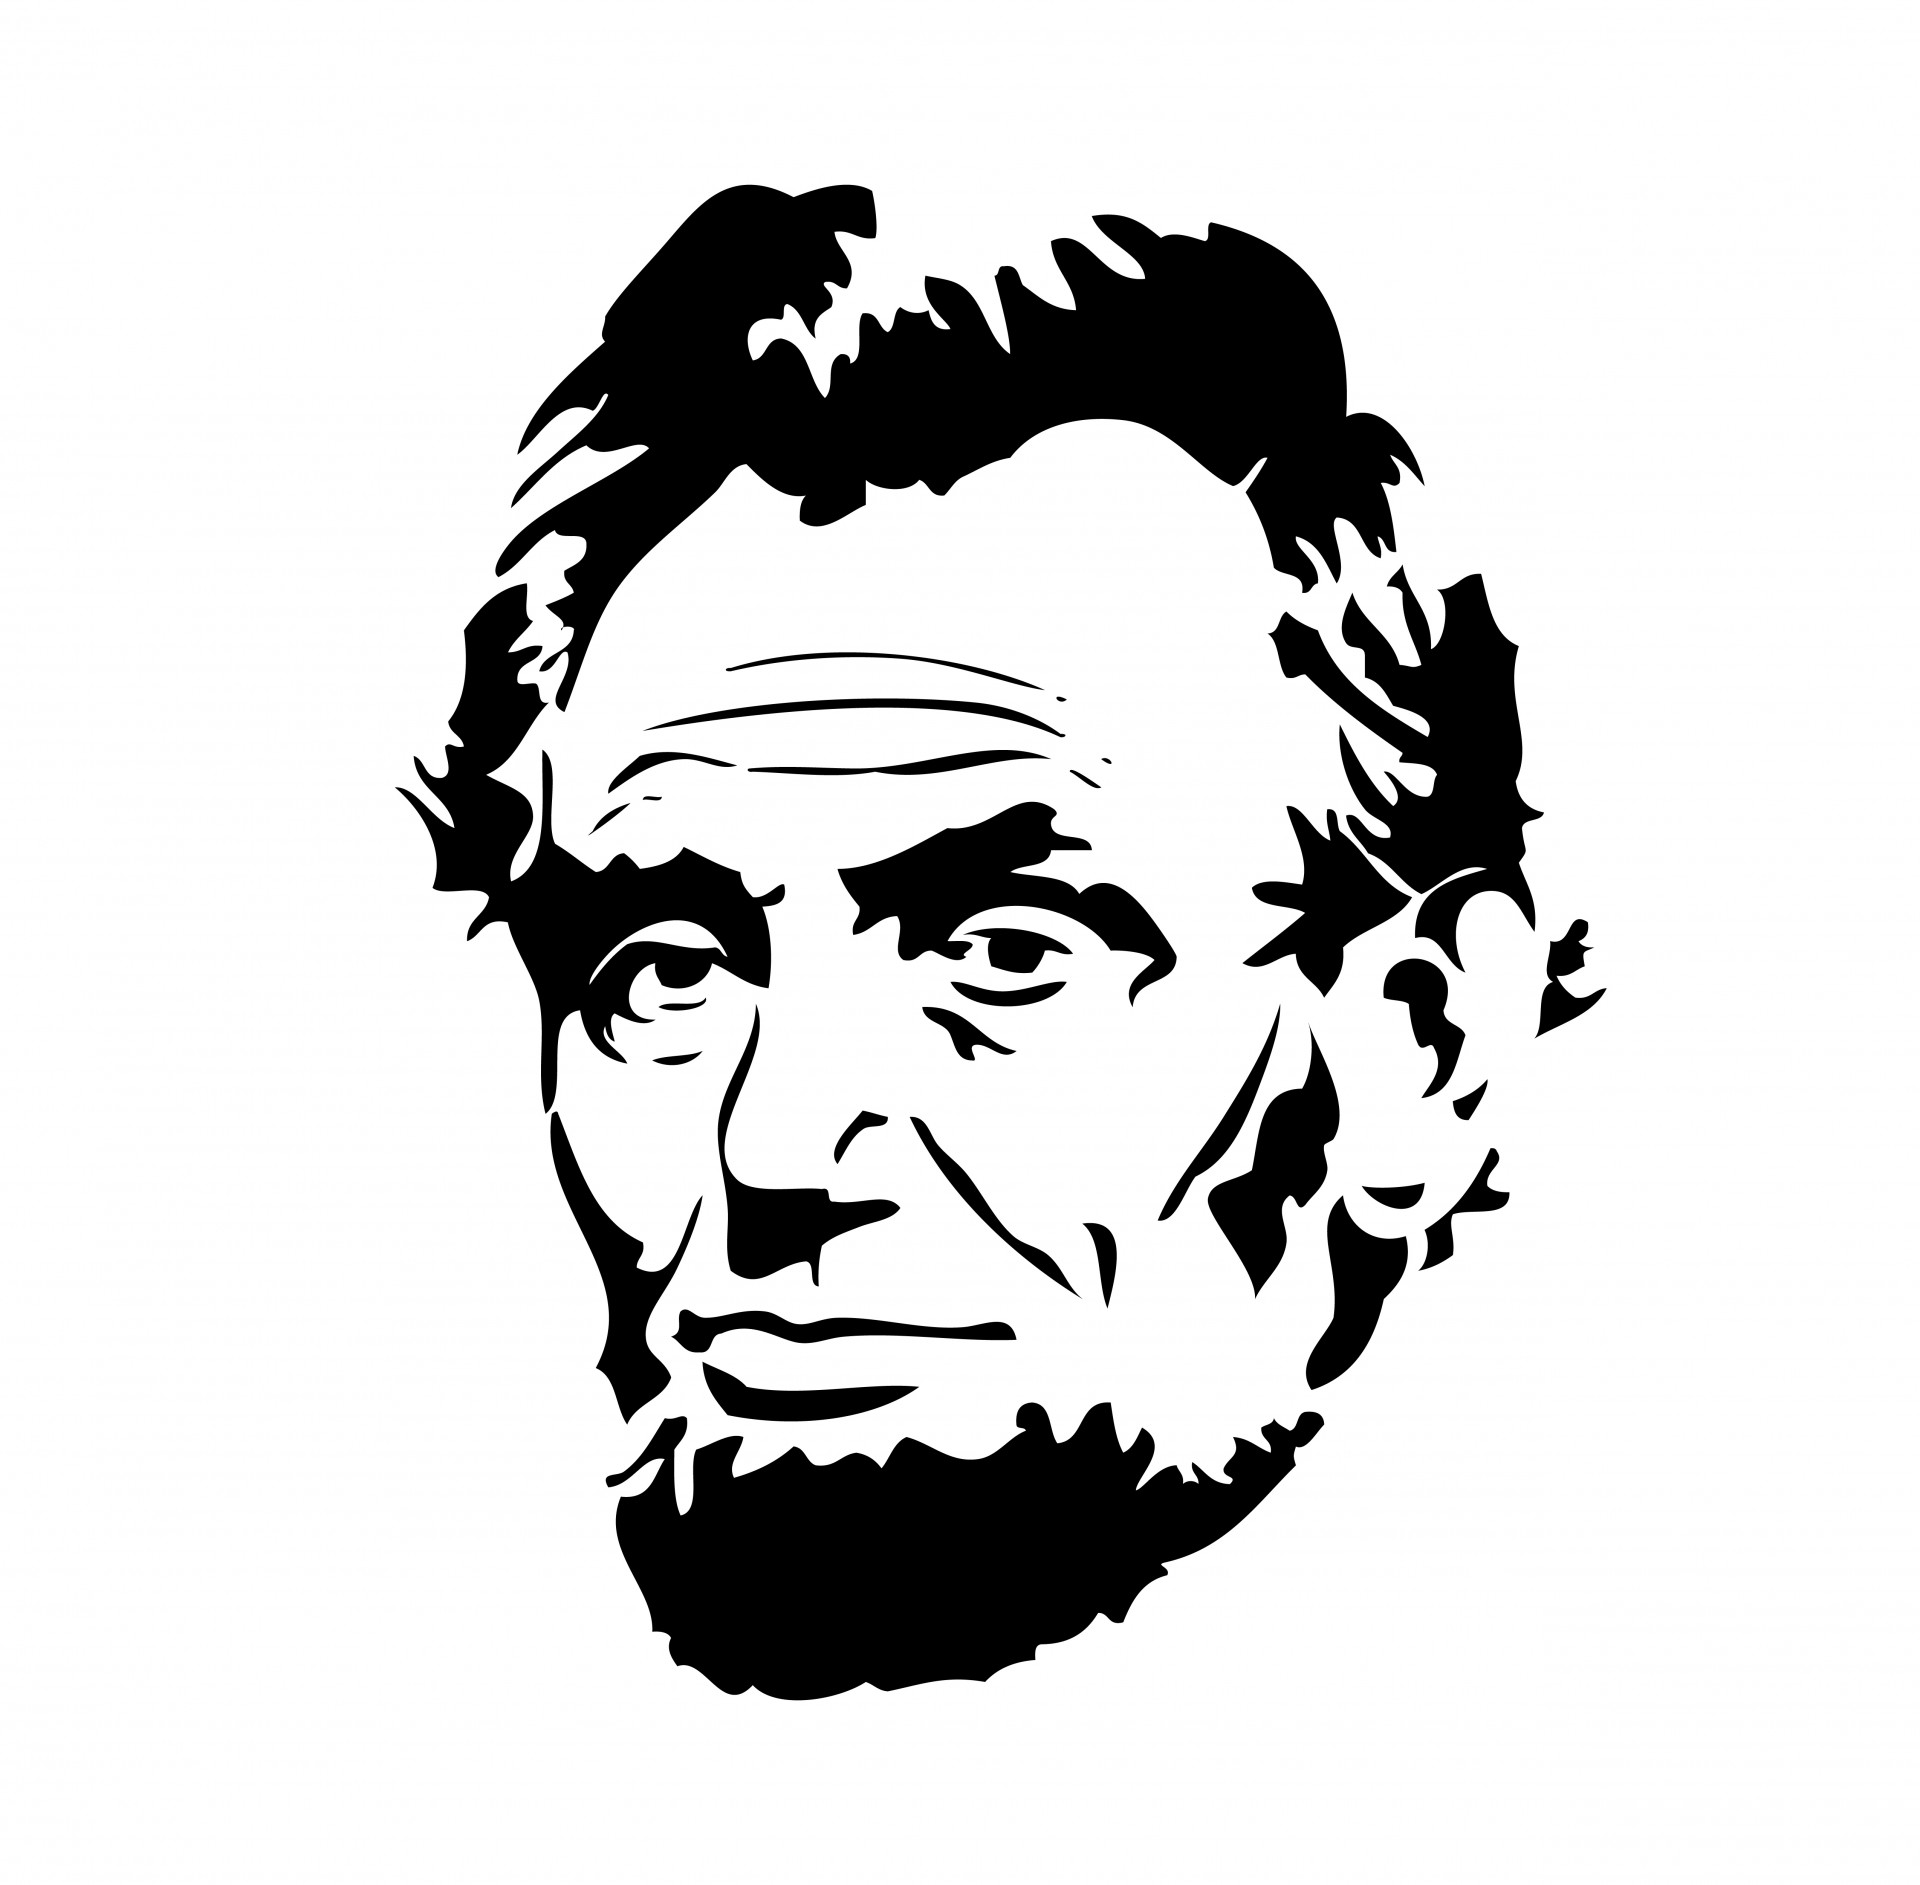 Free stock photo public. Abraham lincoln clipart